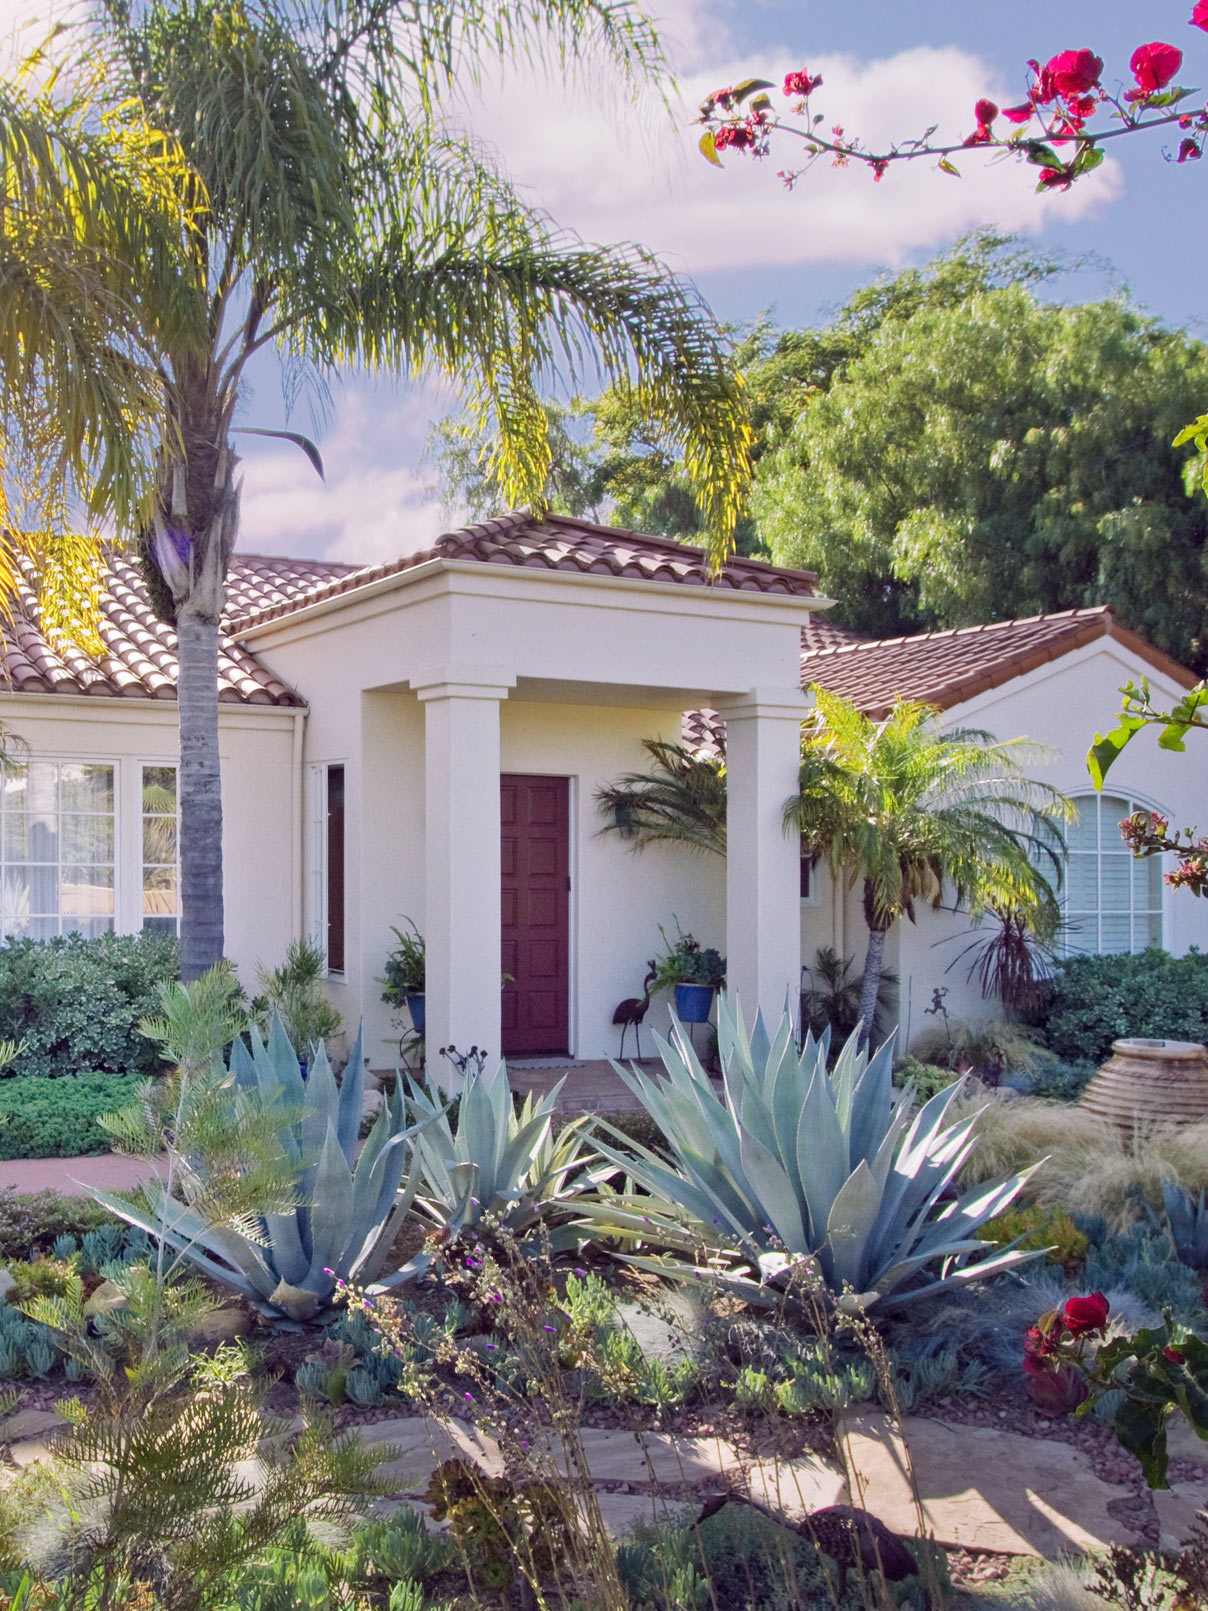 santa barbara homes for sale, monteito homes for sale photo